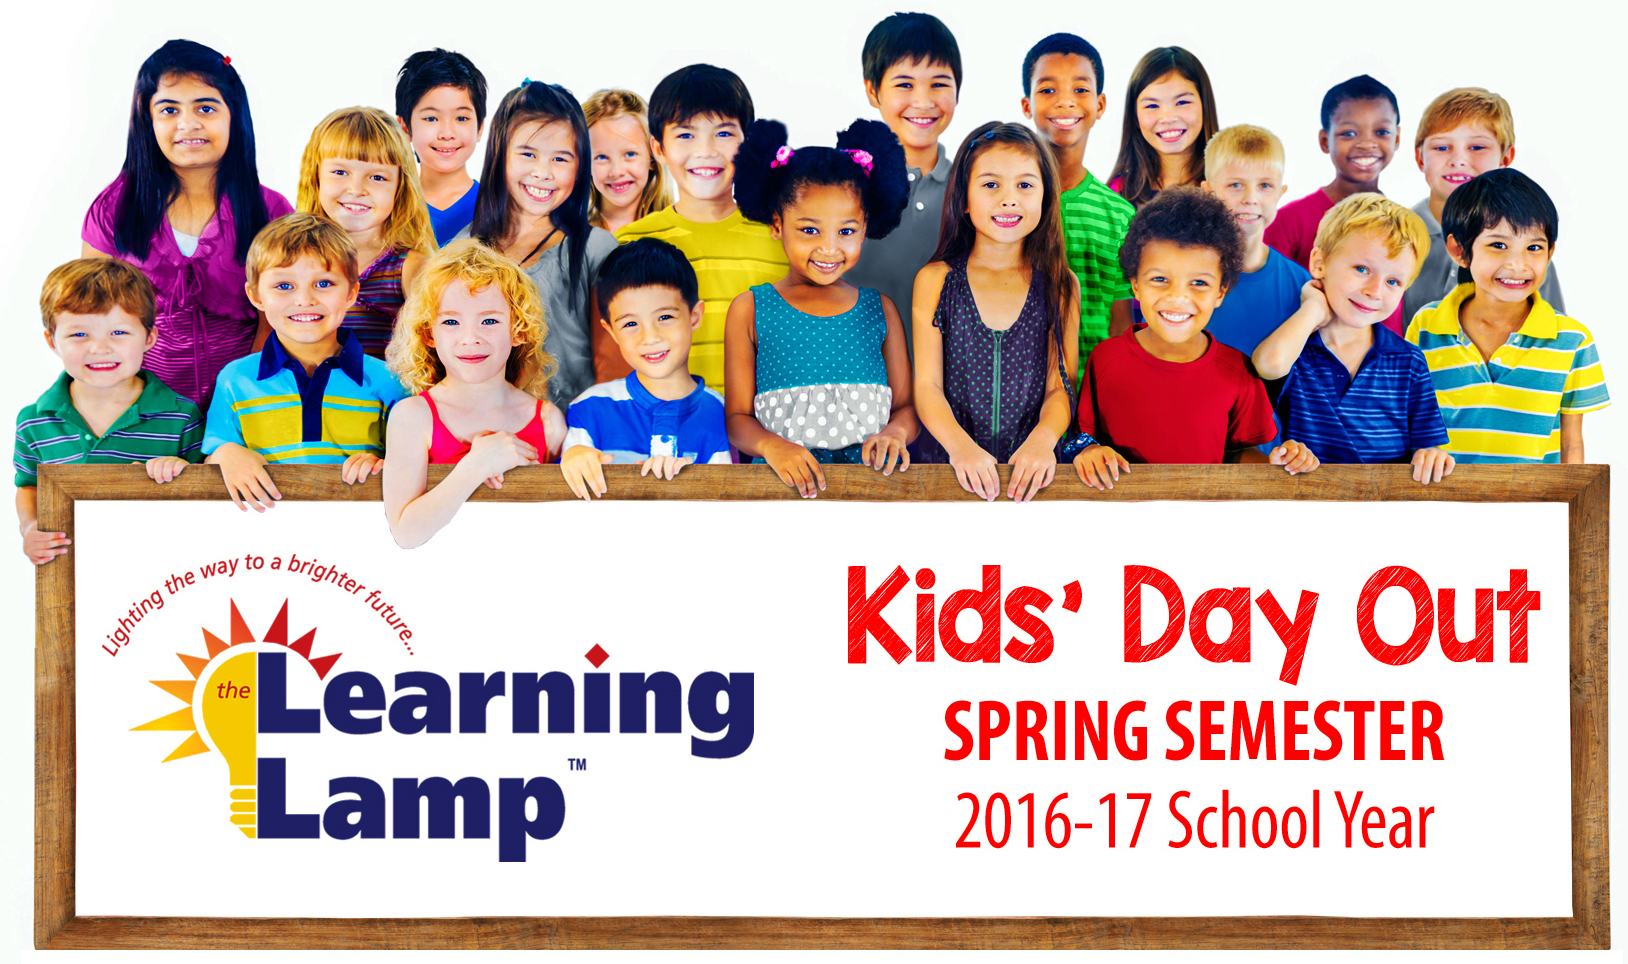 Register Now for Kids' Day Out Spring 2017